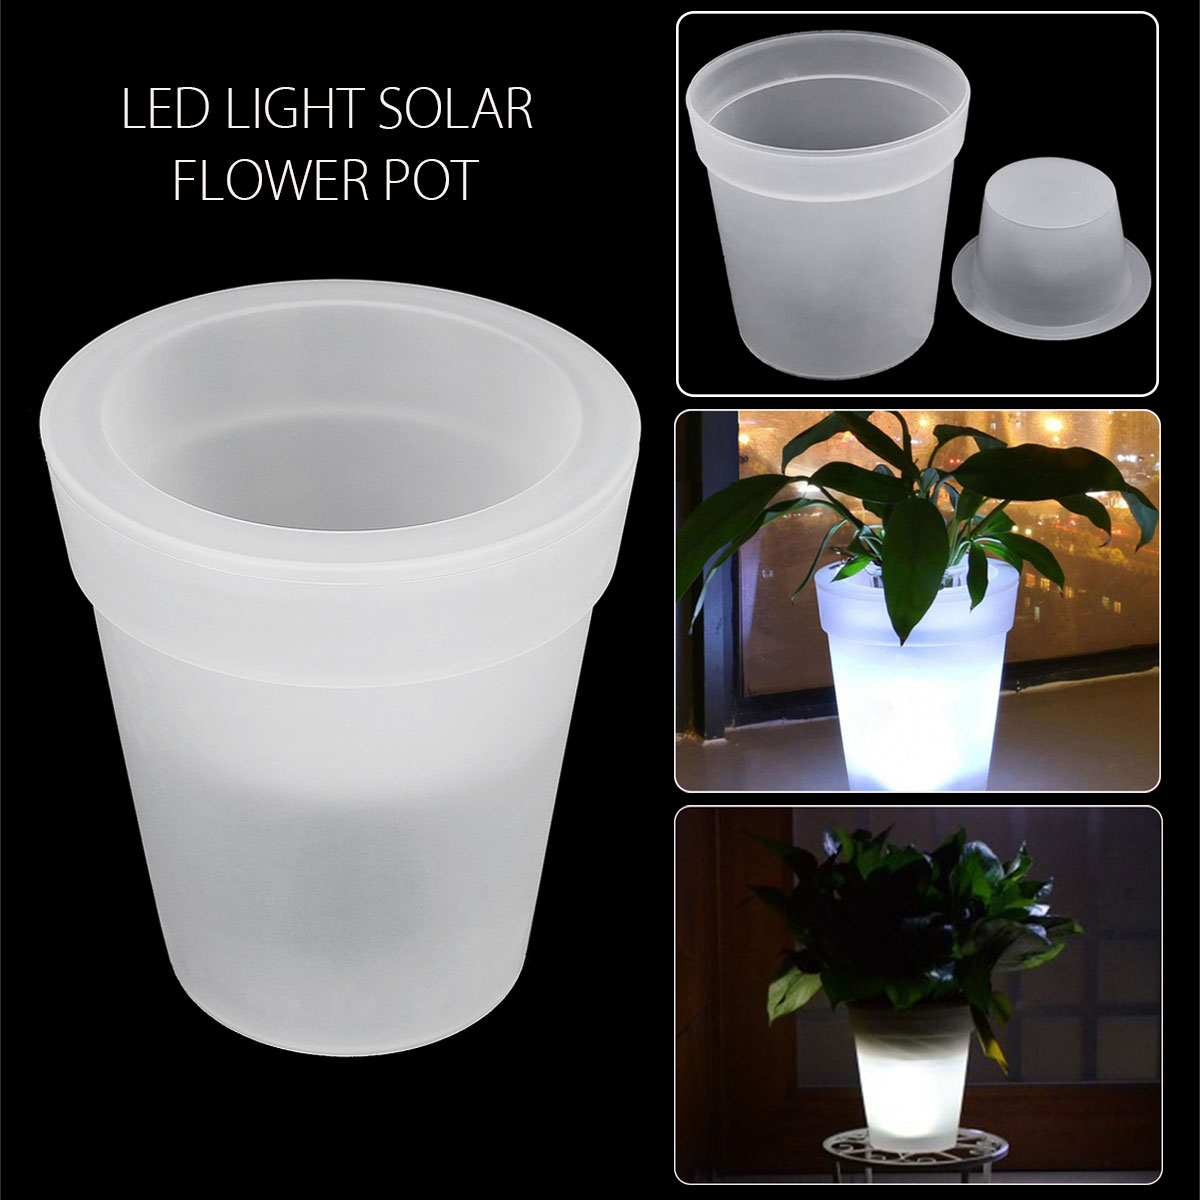 The Solar Illuminated Planter outdoor planter with a solar-powered LED Lights